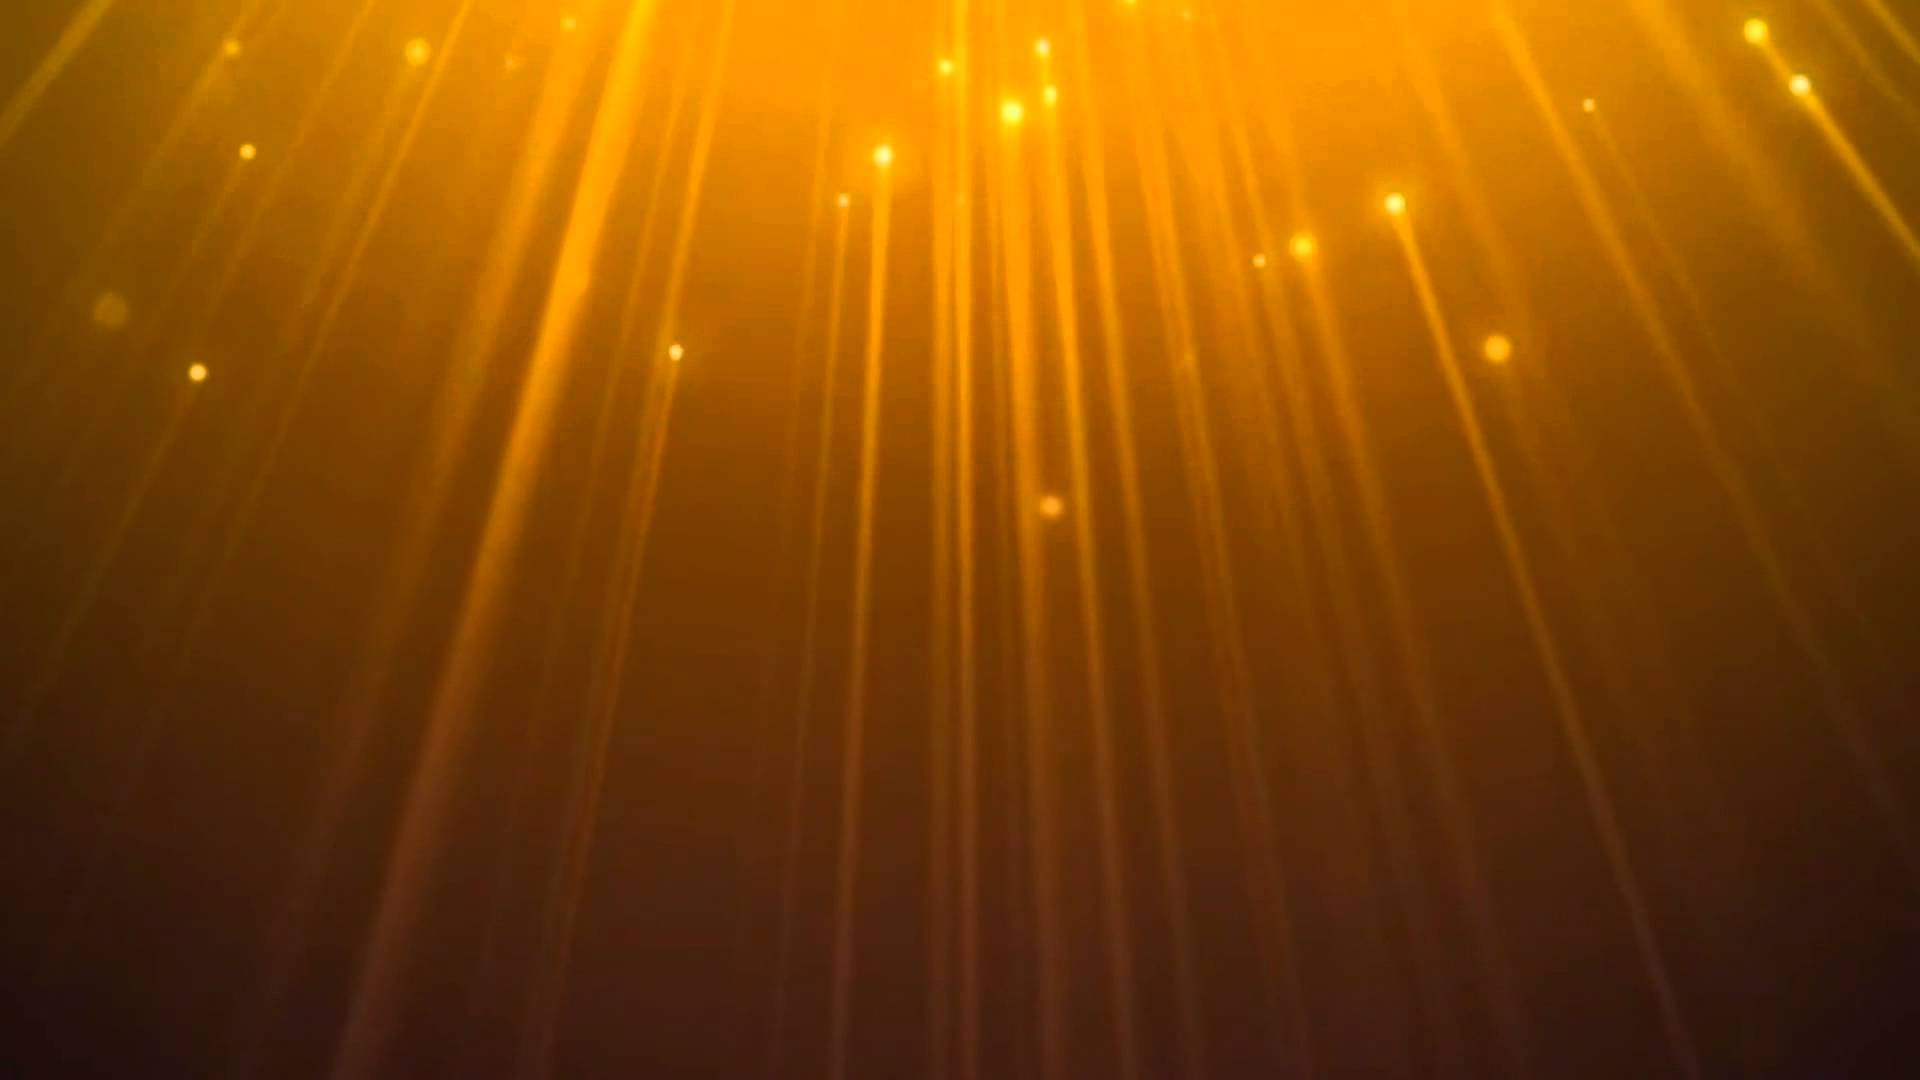 ... Commons motion background video 1080p HD worship background - YouTube